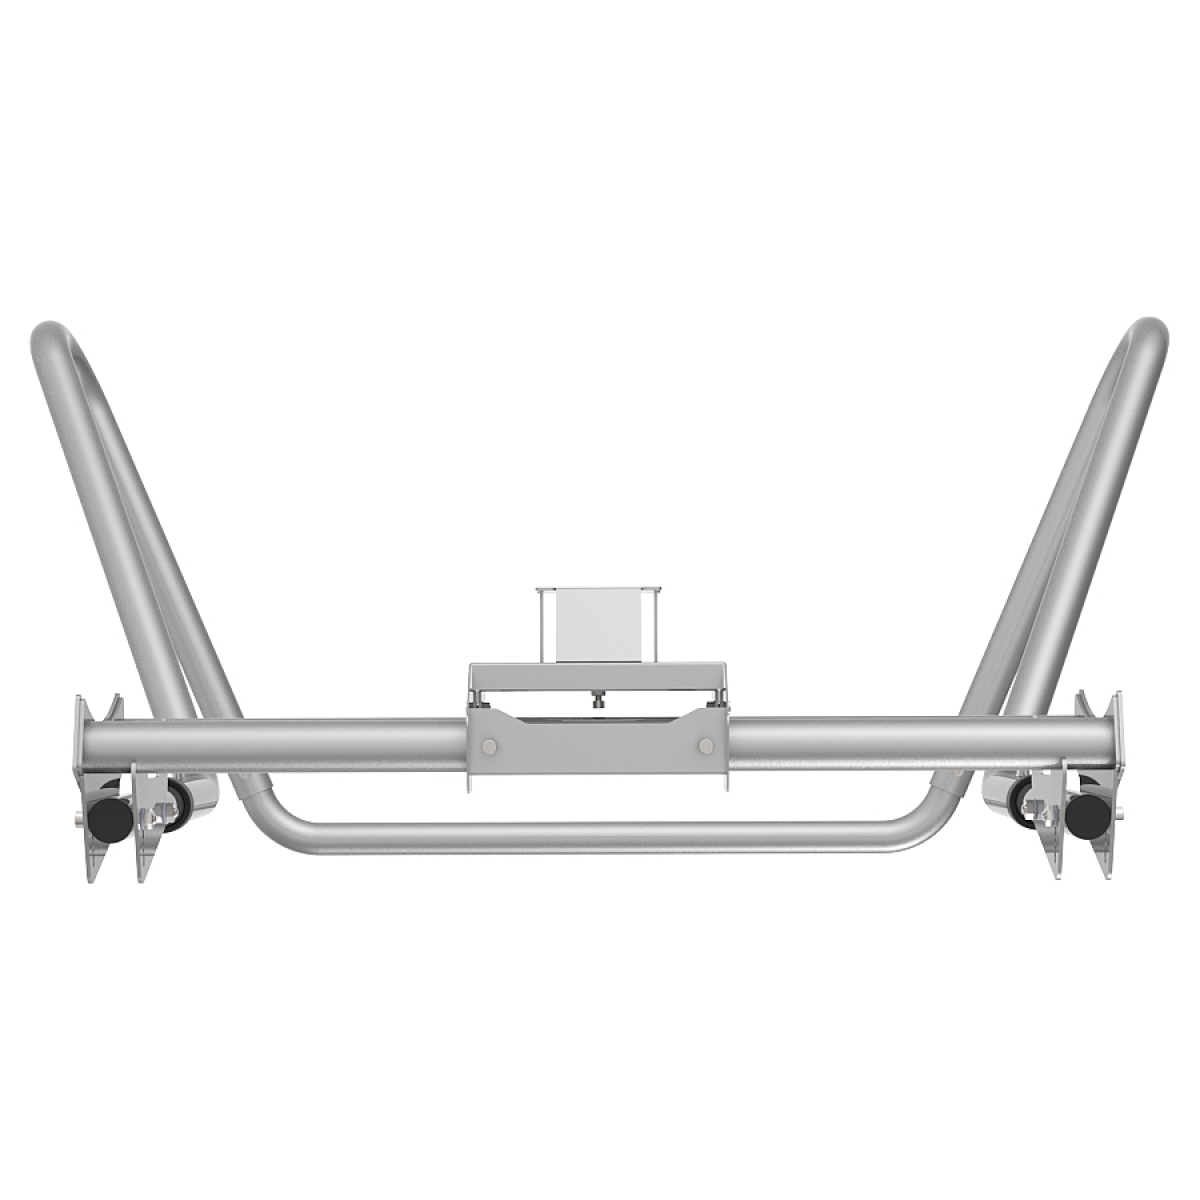 "RS STAND S3M Silver - Ultra Wide Monitor Stand for up to 49"" inch"